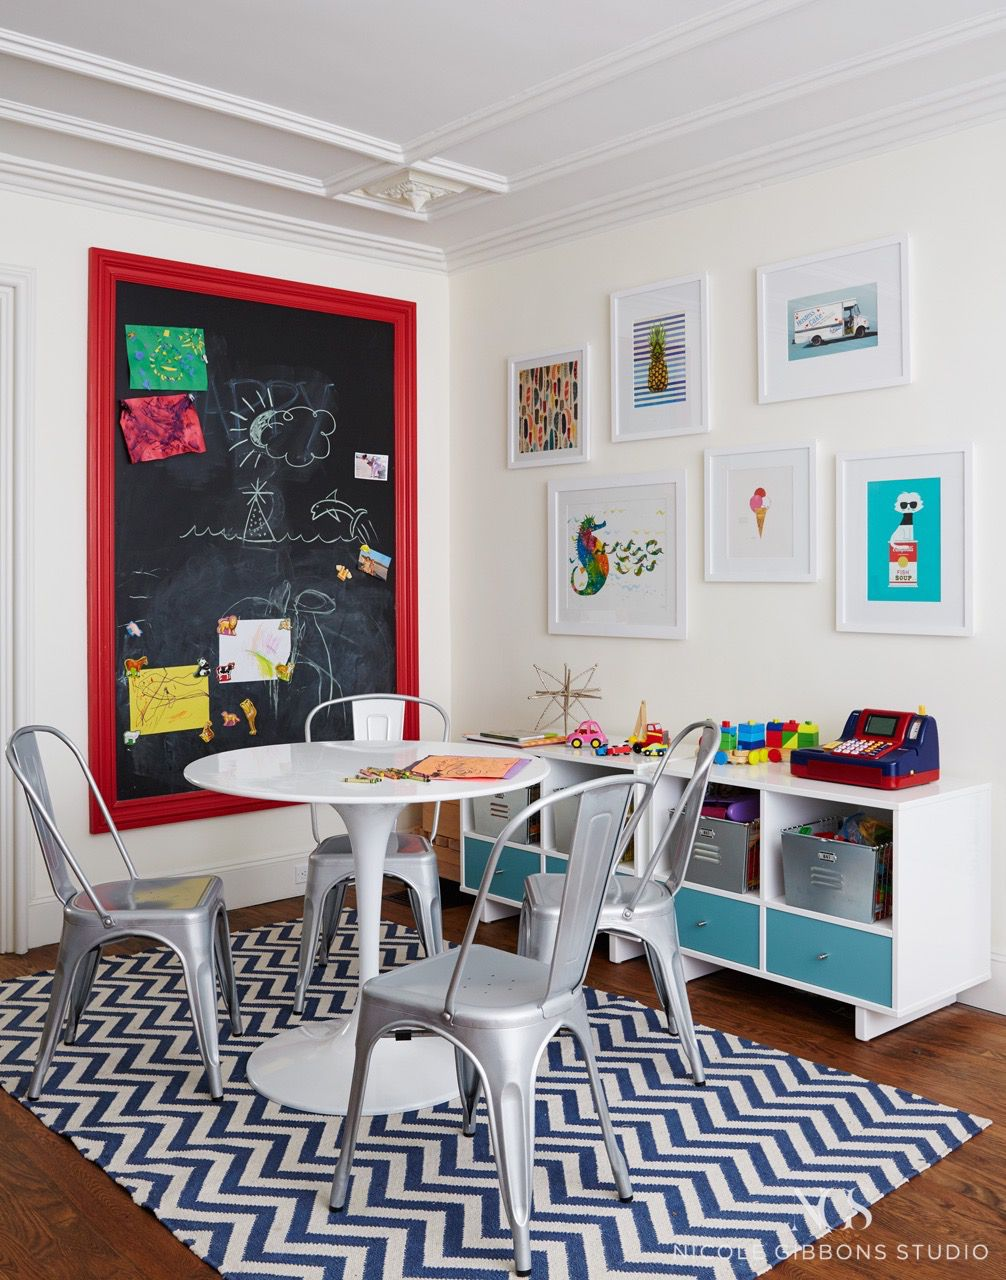 A kids room featuring a blue-and-white chevron rug, four aluminum Tolix chairs, white Tulip table, chalkboard wall with red frame, illustrated artwork on the wall, and a bench composed of cubbies